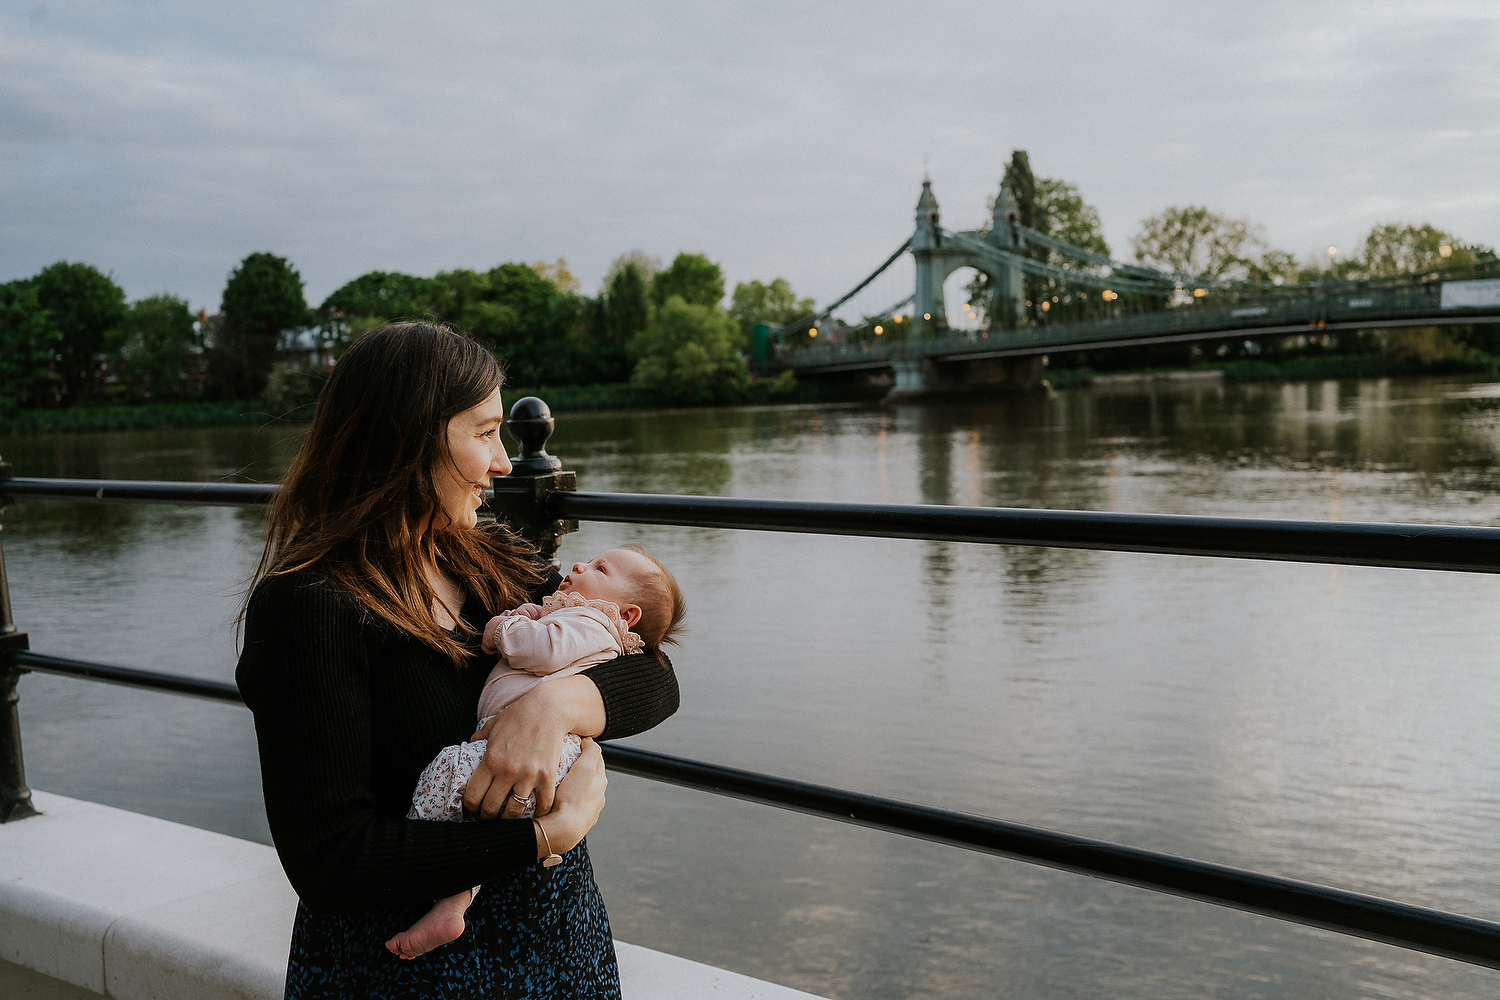 newborn photography in hammersmith mother and baby sunset at bridge